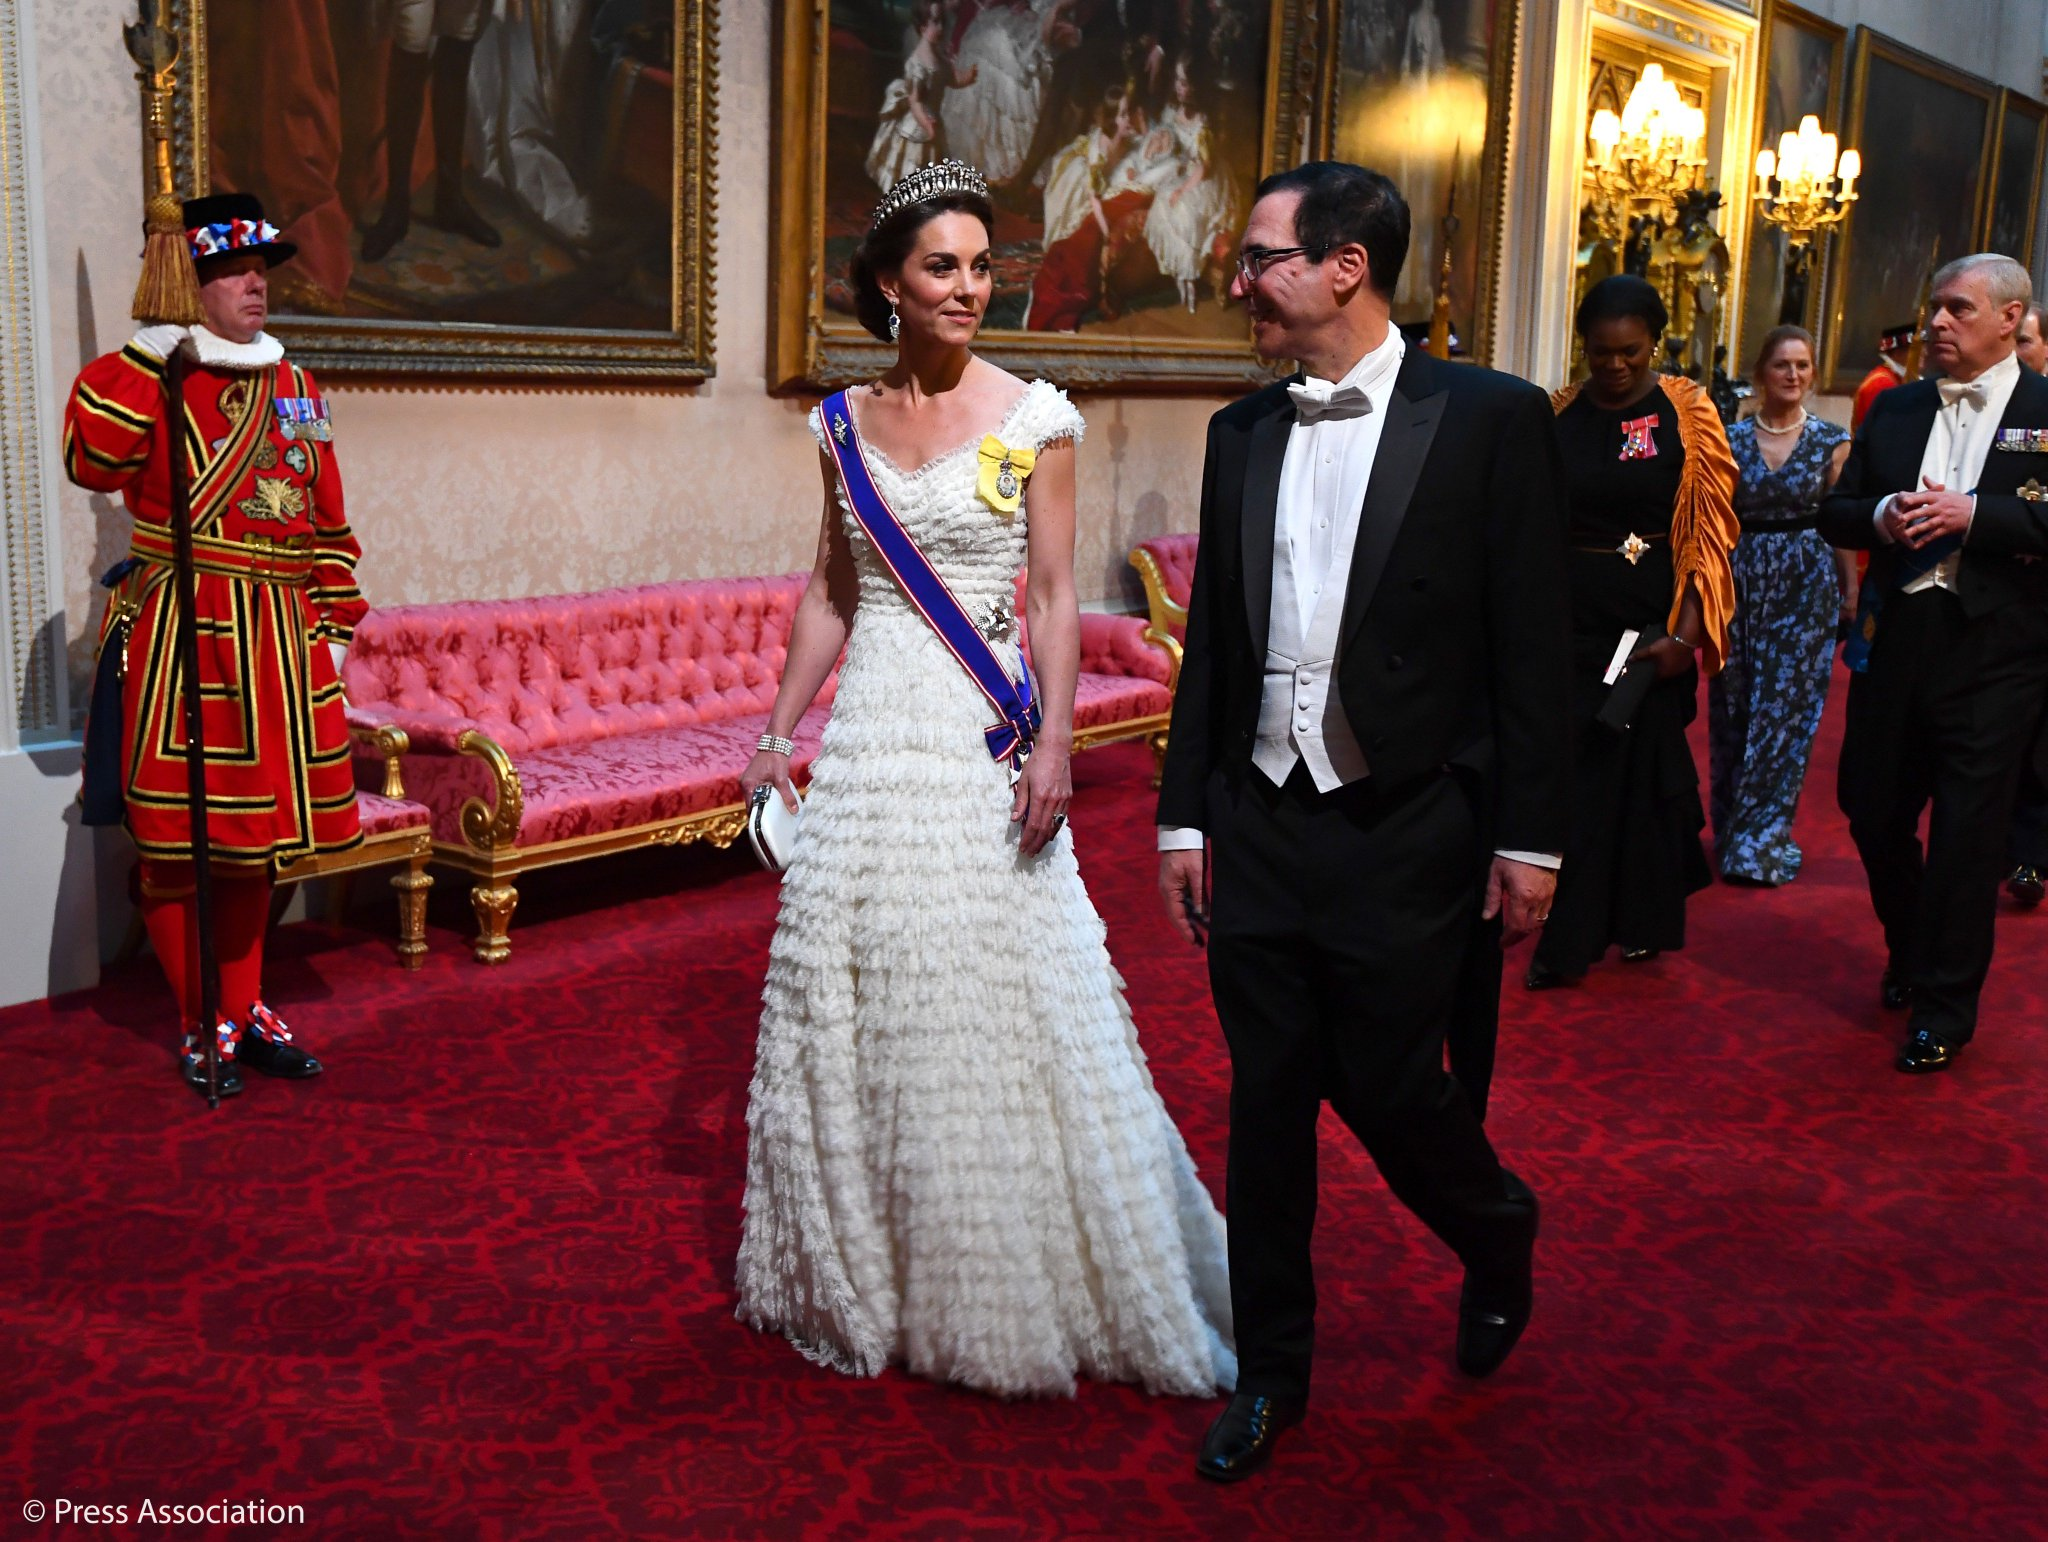 Kate Middleton Wears a Romantic Dress With Ruffles for State Dinner